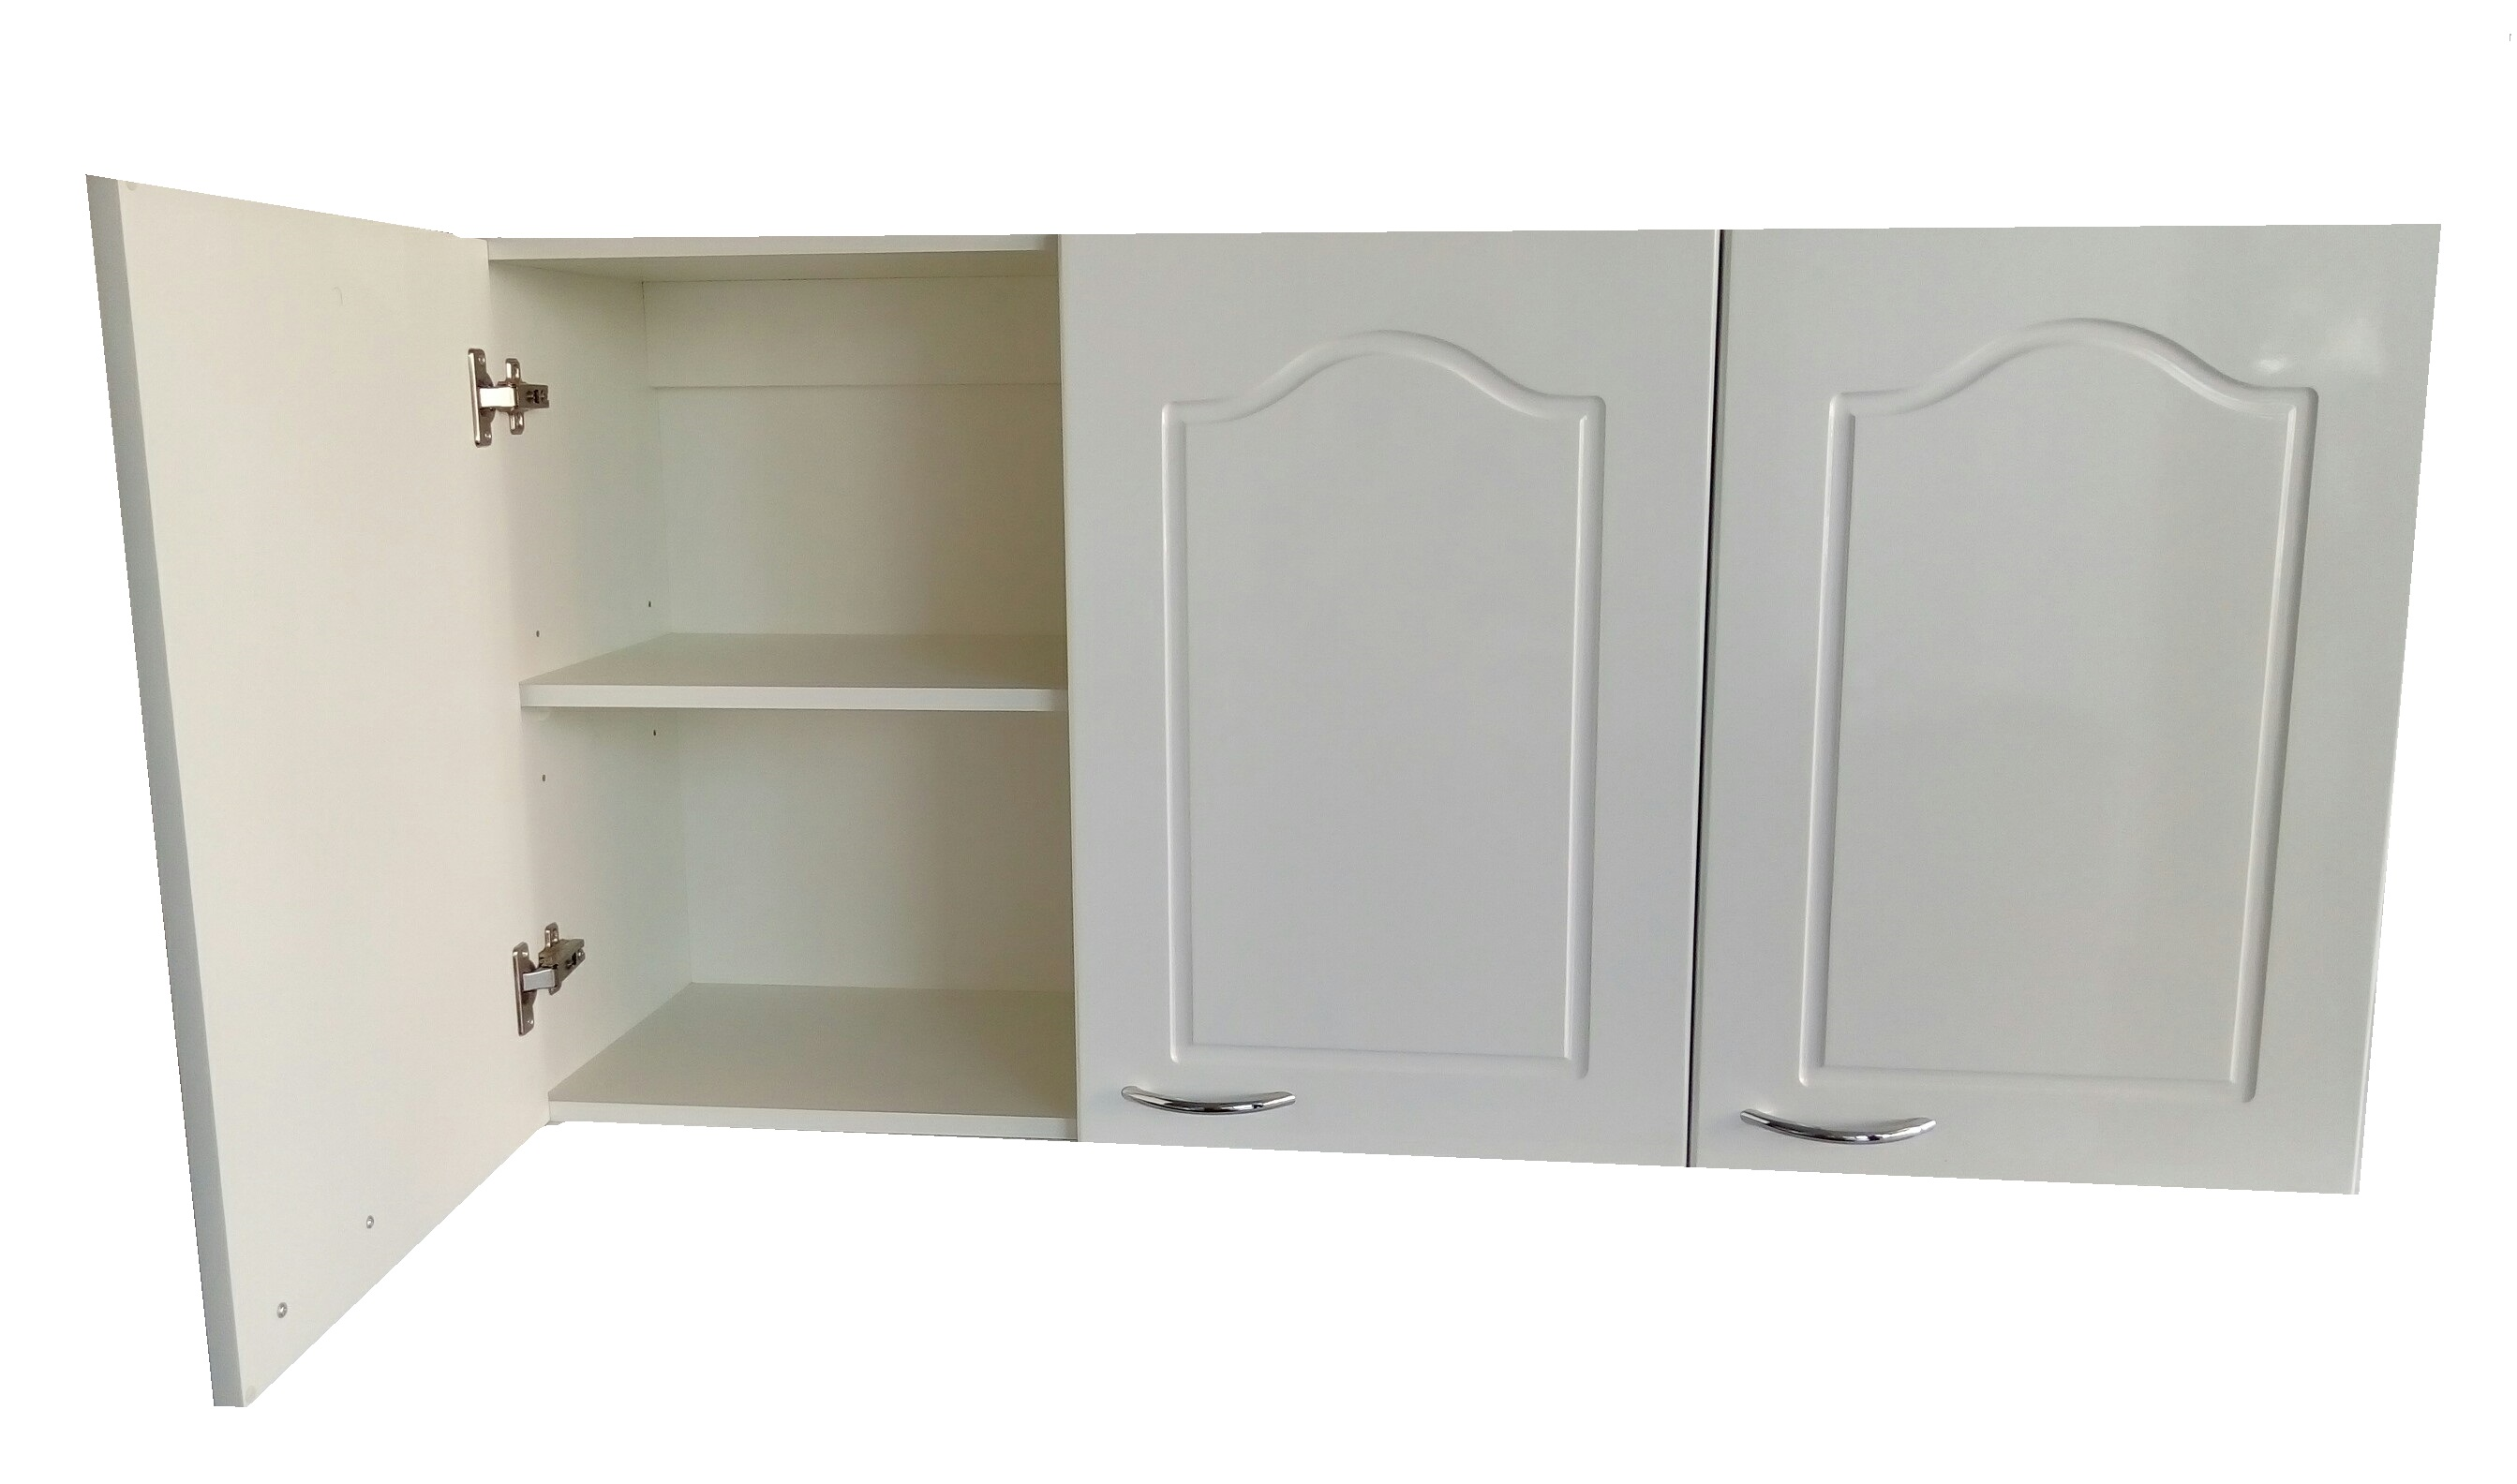 Mueble mural x 30 x 60 for Mueble cocina 60 x 30